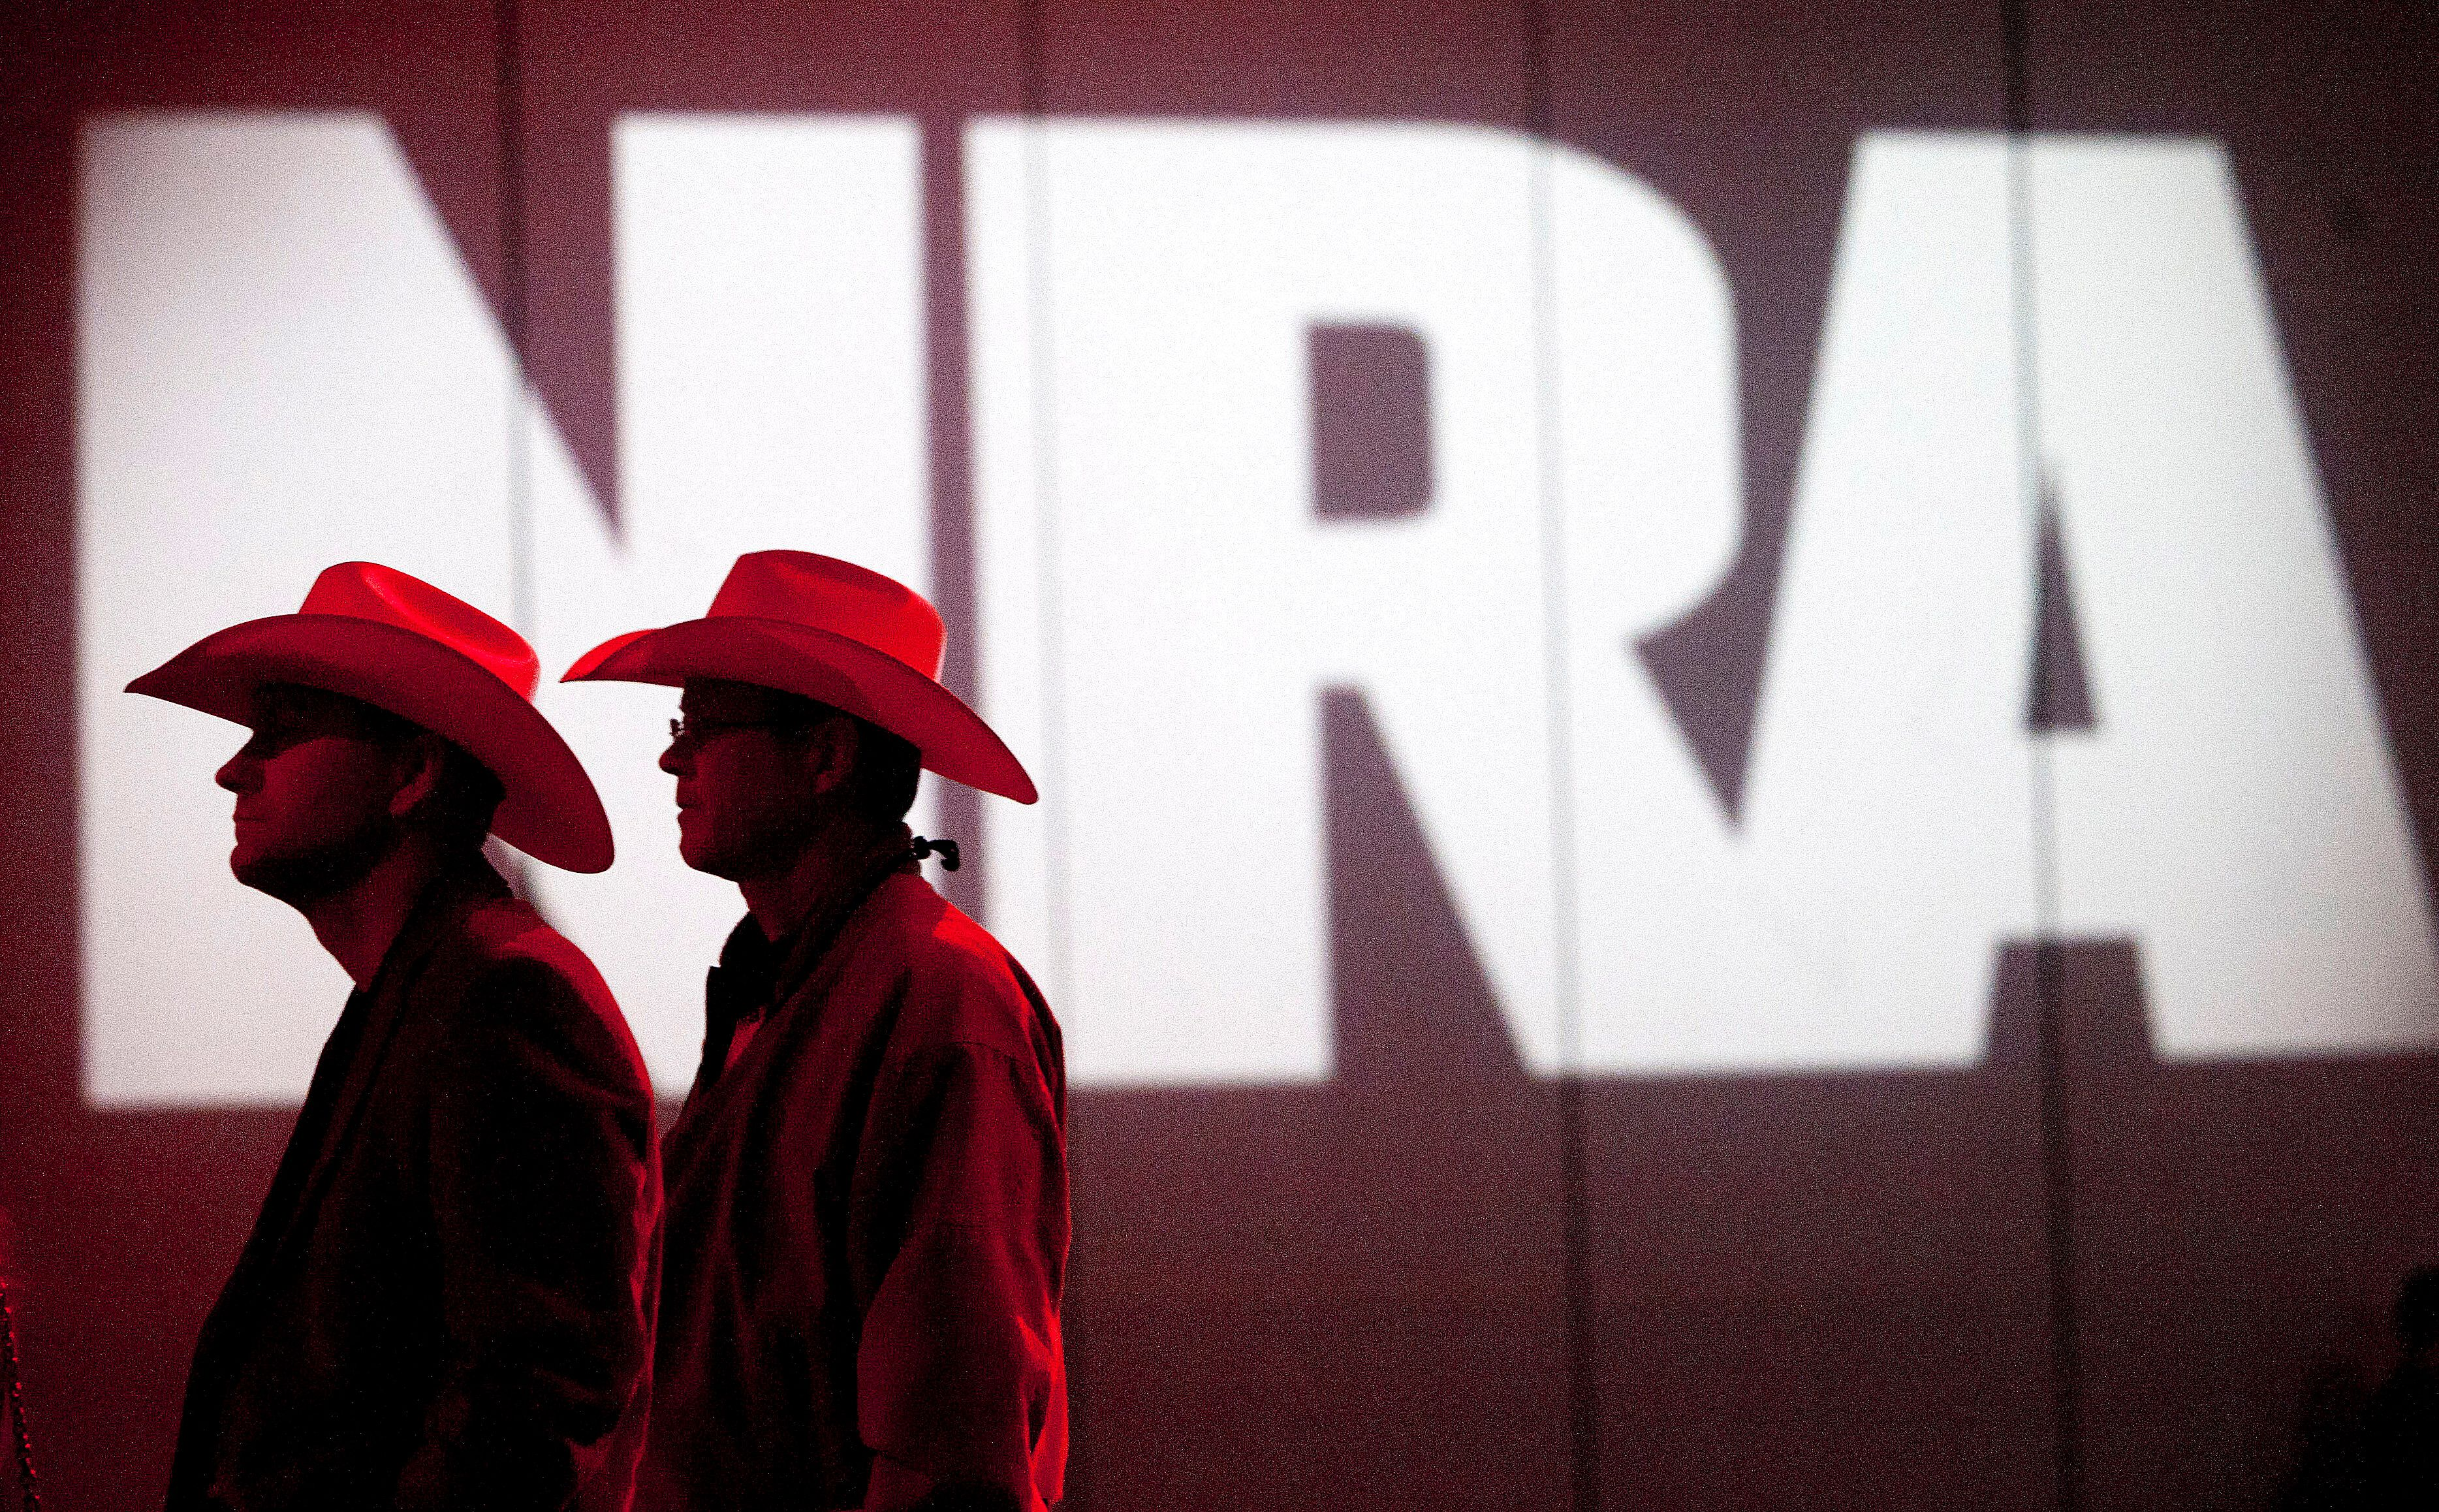 FILE - In this May 4, 2013, file photo, NRA members listen to speakers during the NRA Annual Meeting of Members at the National Rifle Association's 142 Annual Meetings and Exhibits in the George R. Brown Convention Center in Houston. The National Rifle Association is gathering for its 148th annual meeting beginning Thursday, April 25, 2019, in Indianapolis. (Johnny Hanson/Houston Chronicle via AP, File)